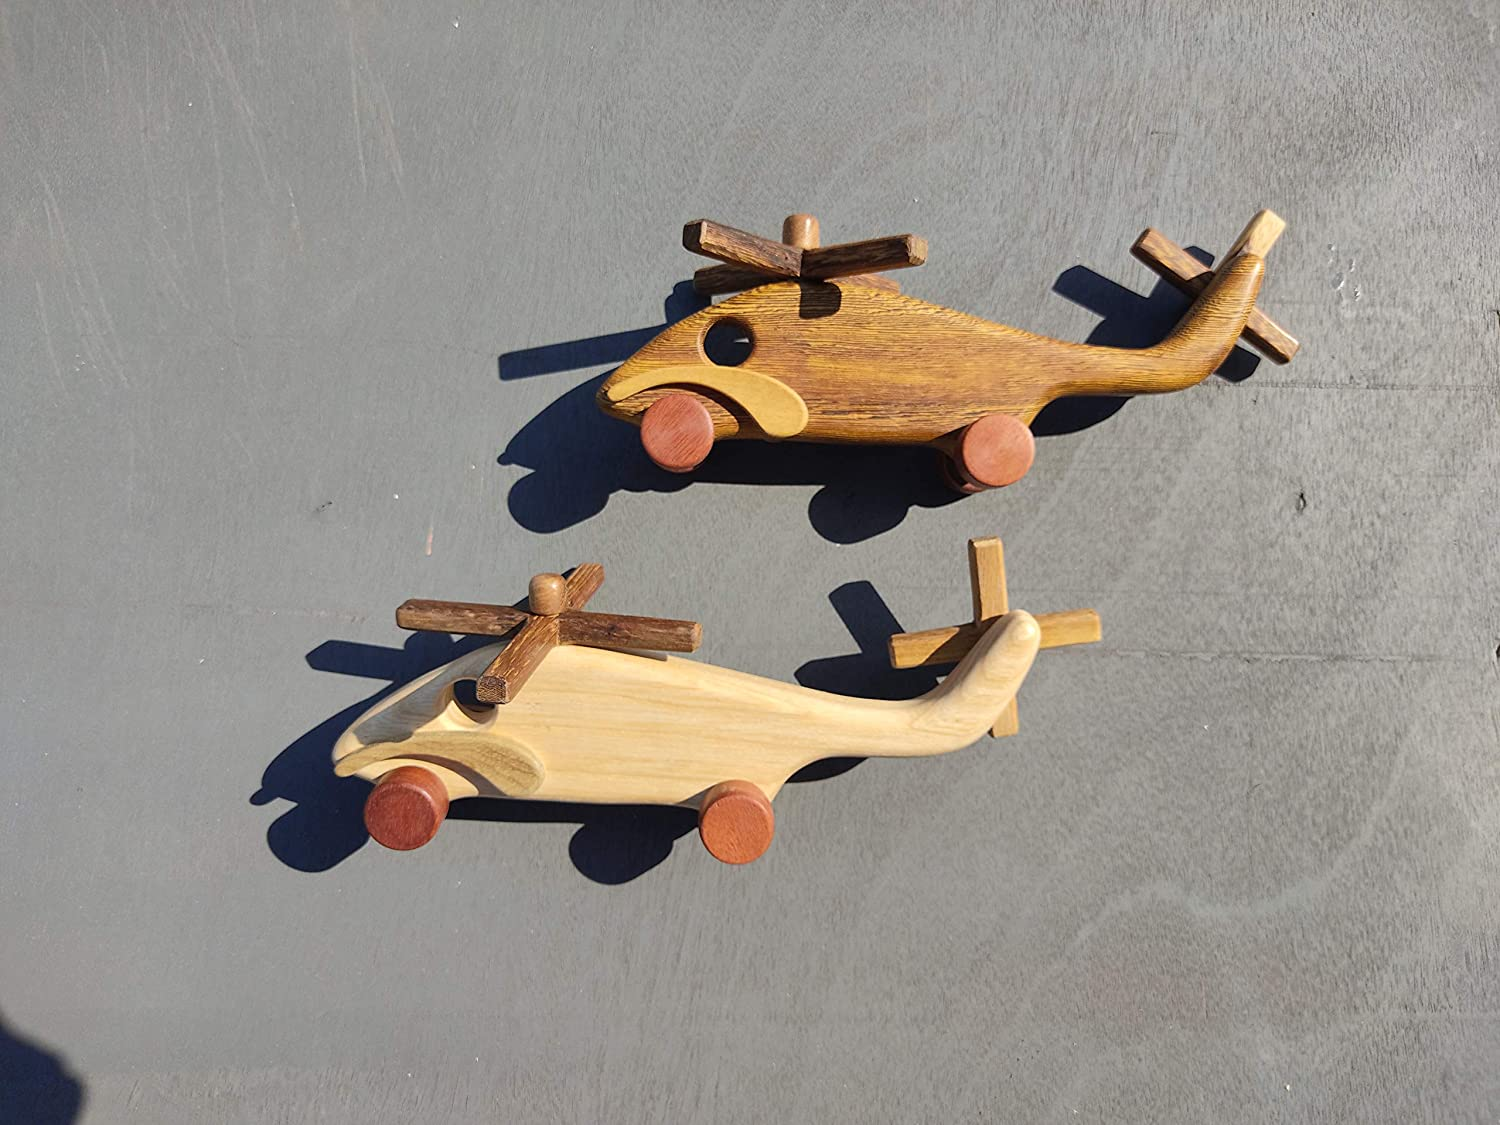 Safe Handmade Kids Classic Activity Baby Stork Wooden Toy Helicopter A Ages 3-Year-Old and up Smooth Grinding Cute Wings Four Wooden Wheels with Tung Oil Glossy Finish Round Edges